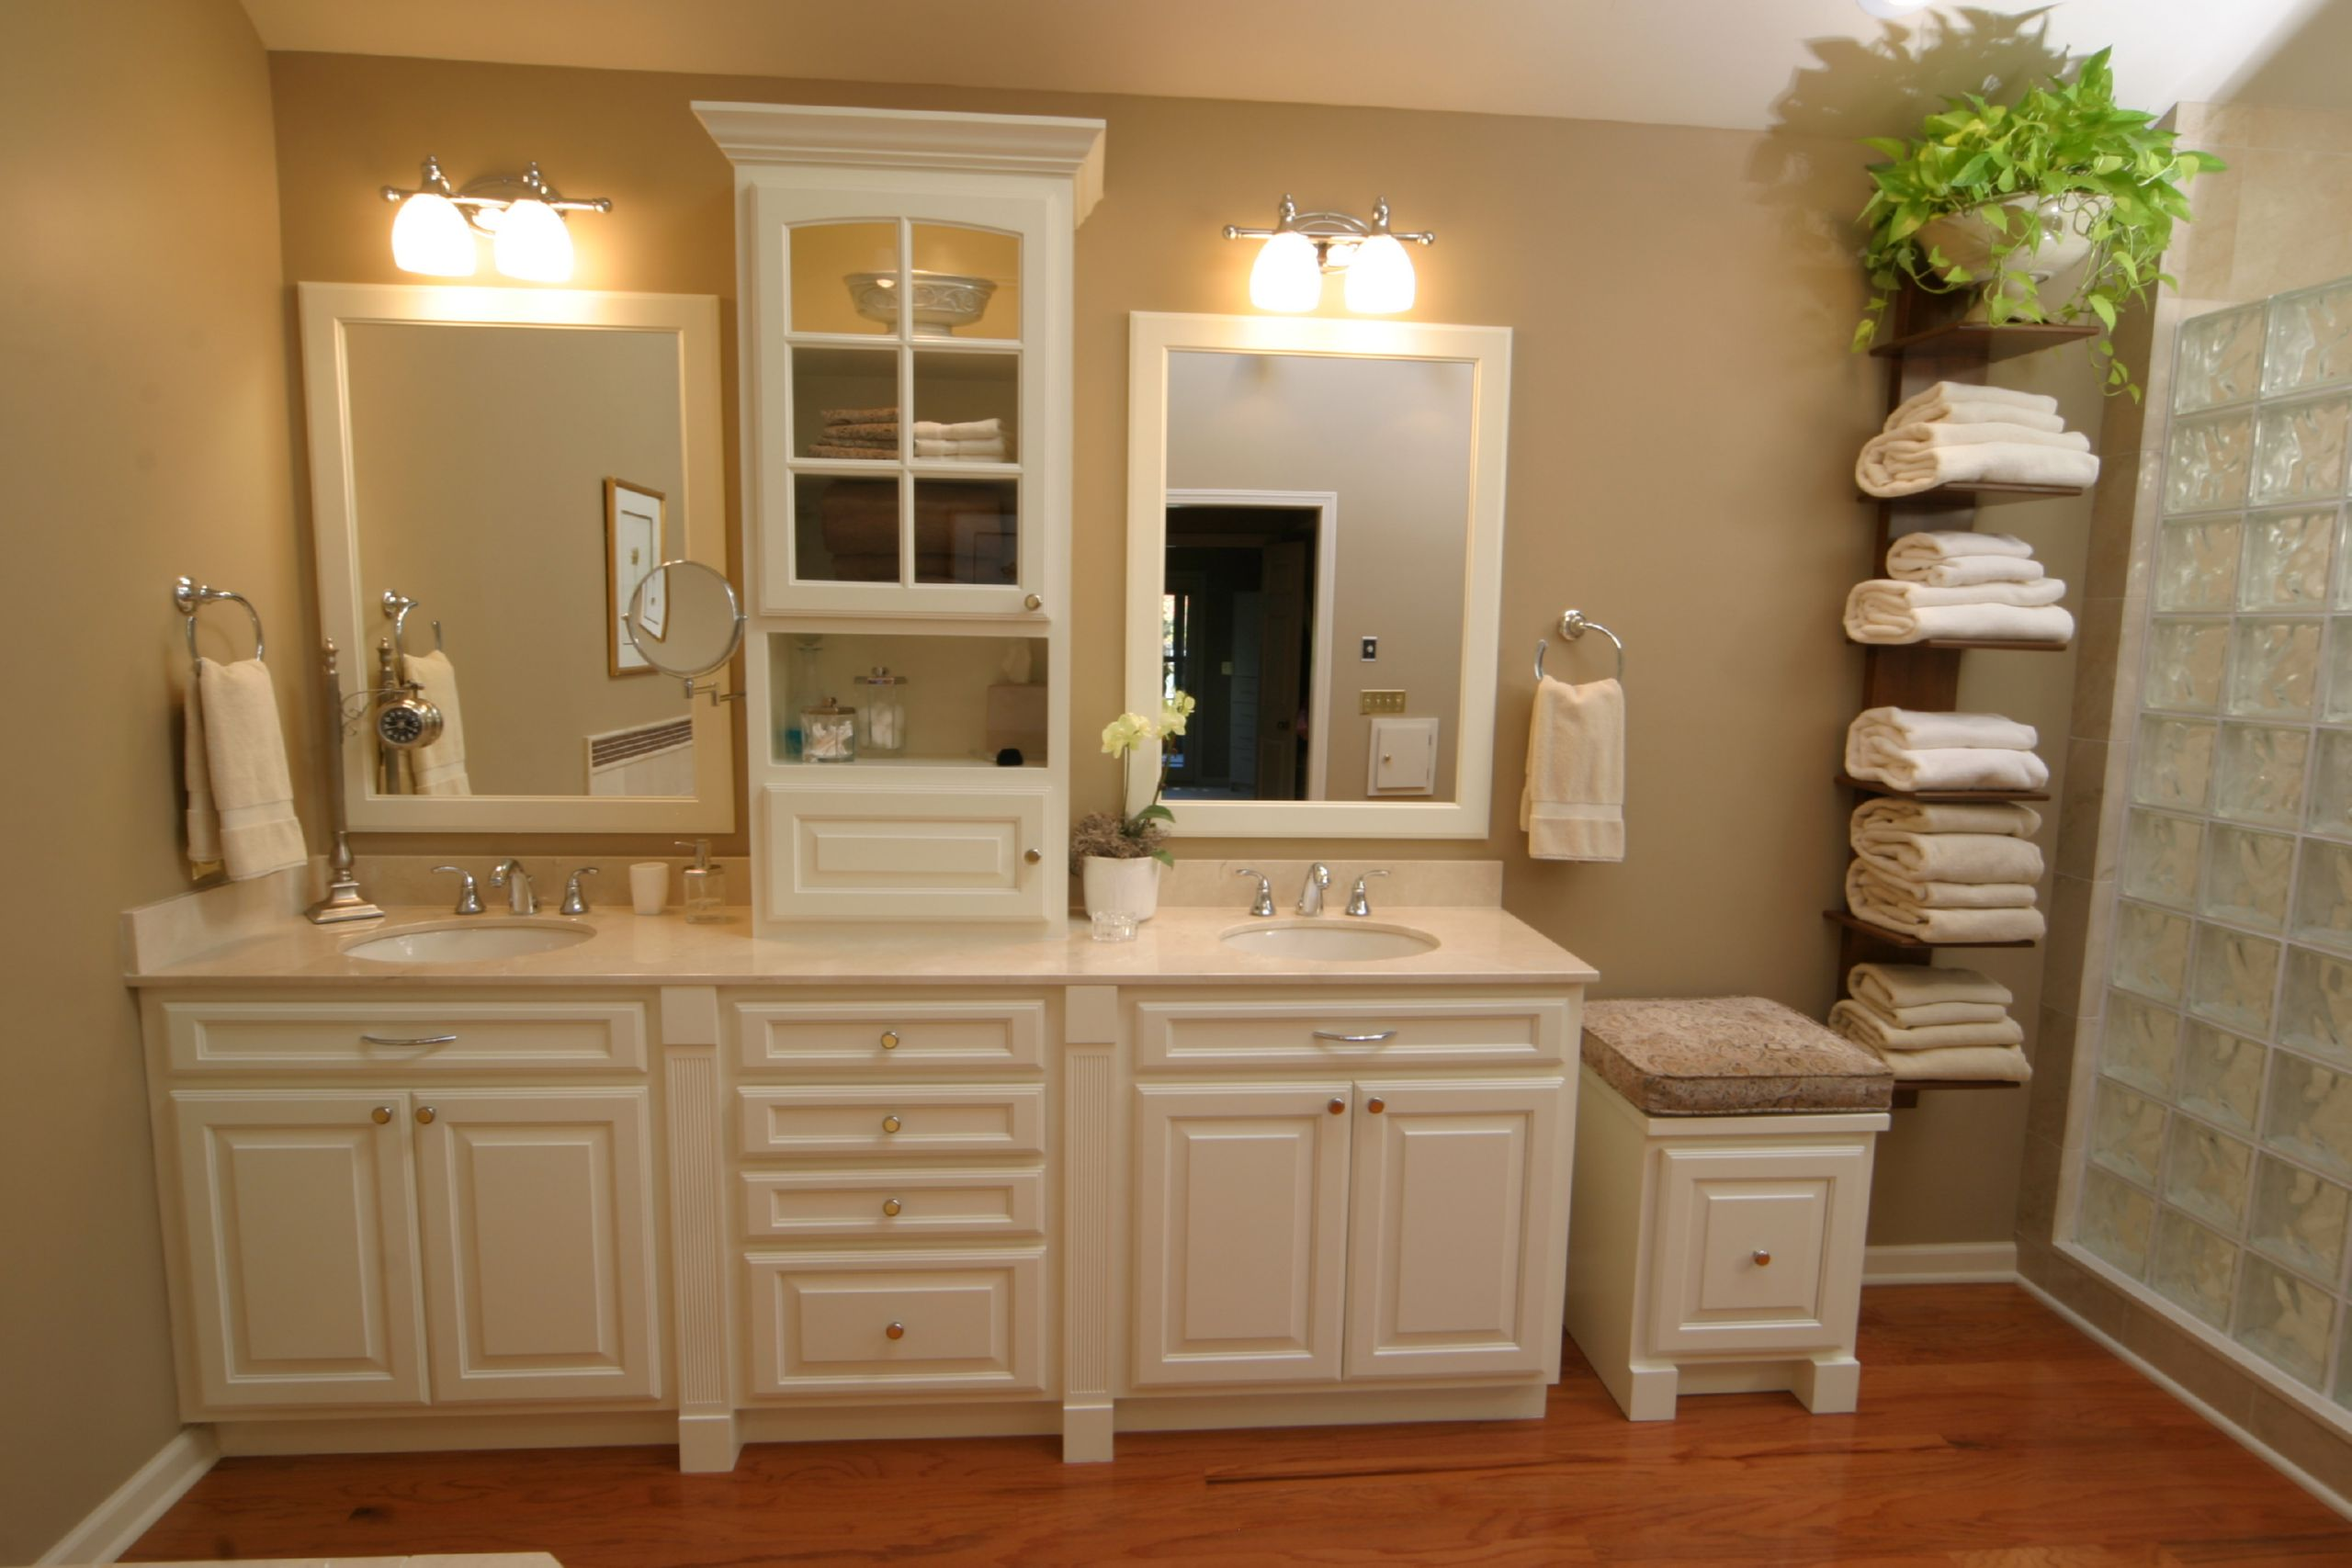 Bathroom remodeling bath remodel contractor for Bathroom remodel photo gallery